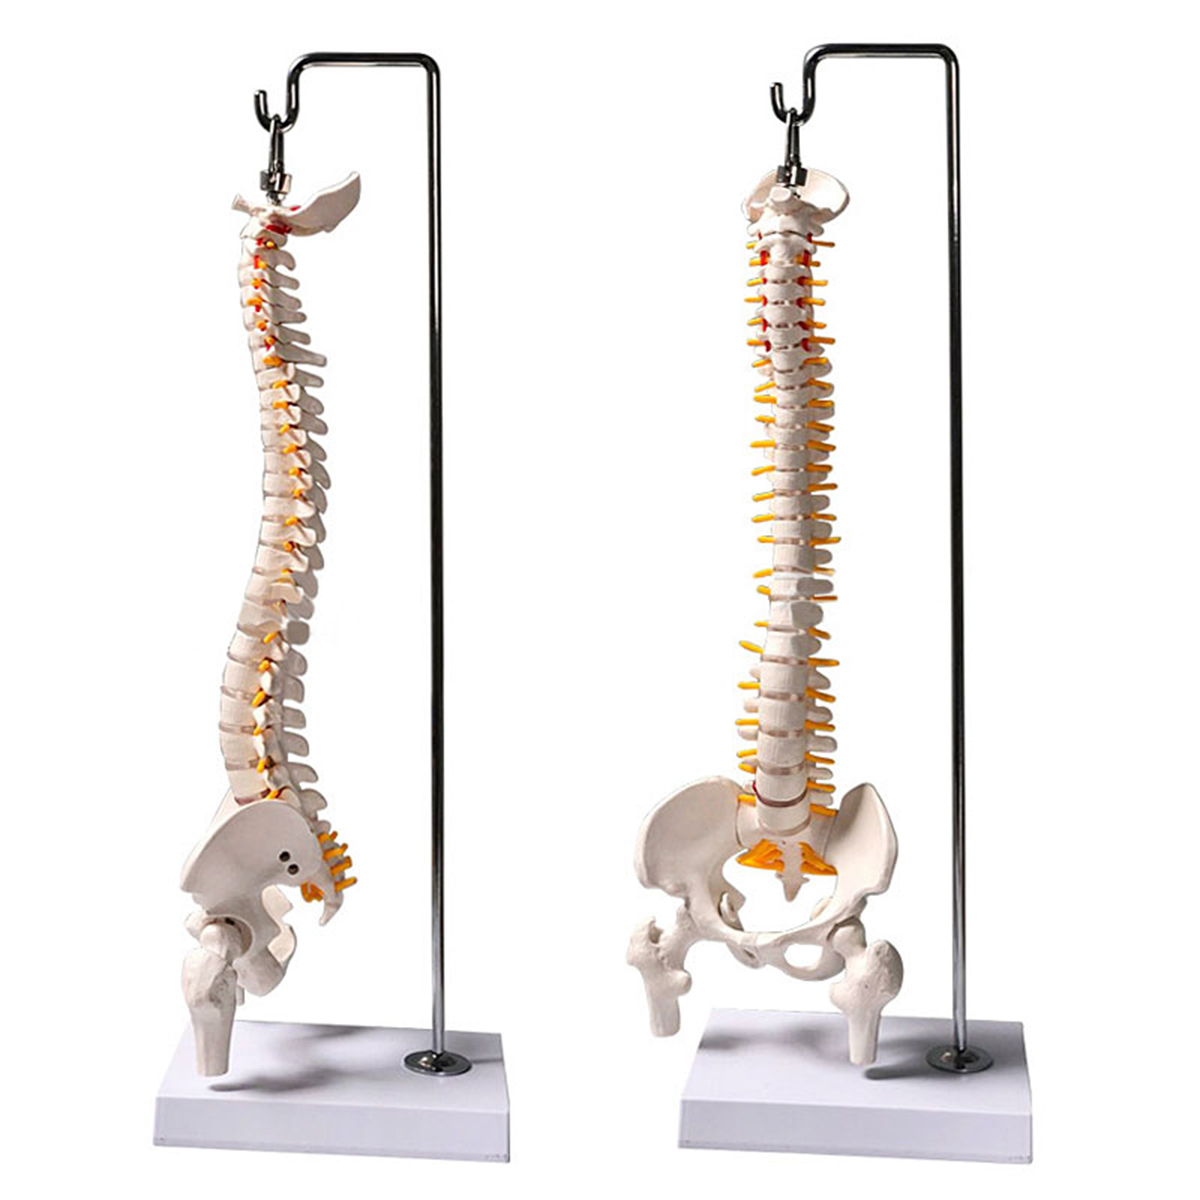 45cm 1/2 Life Size Human Anatomy Spine Model Pelvis Femurs With Hnanging Stand Educational Medical Science Teaching Model